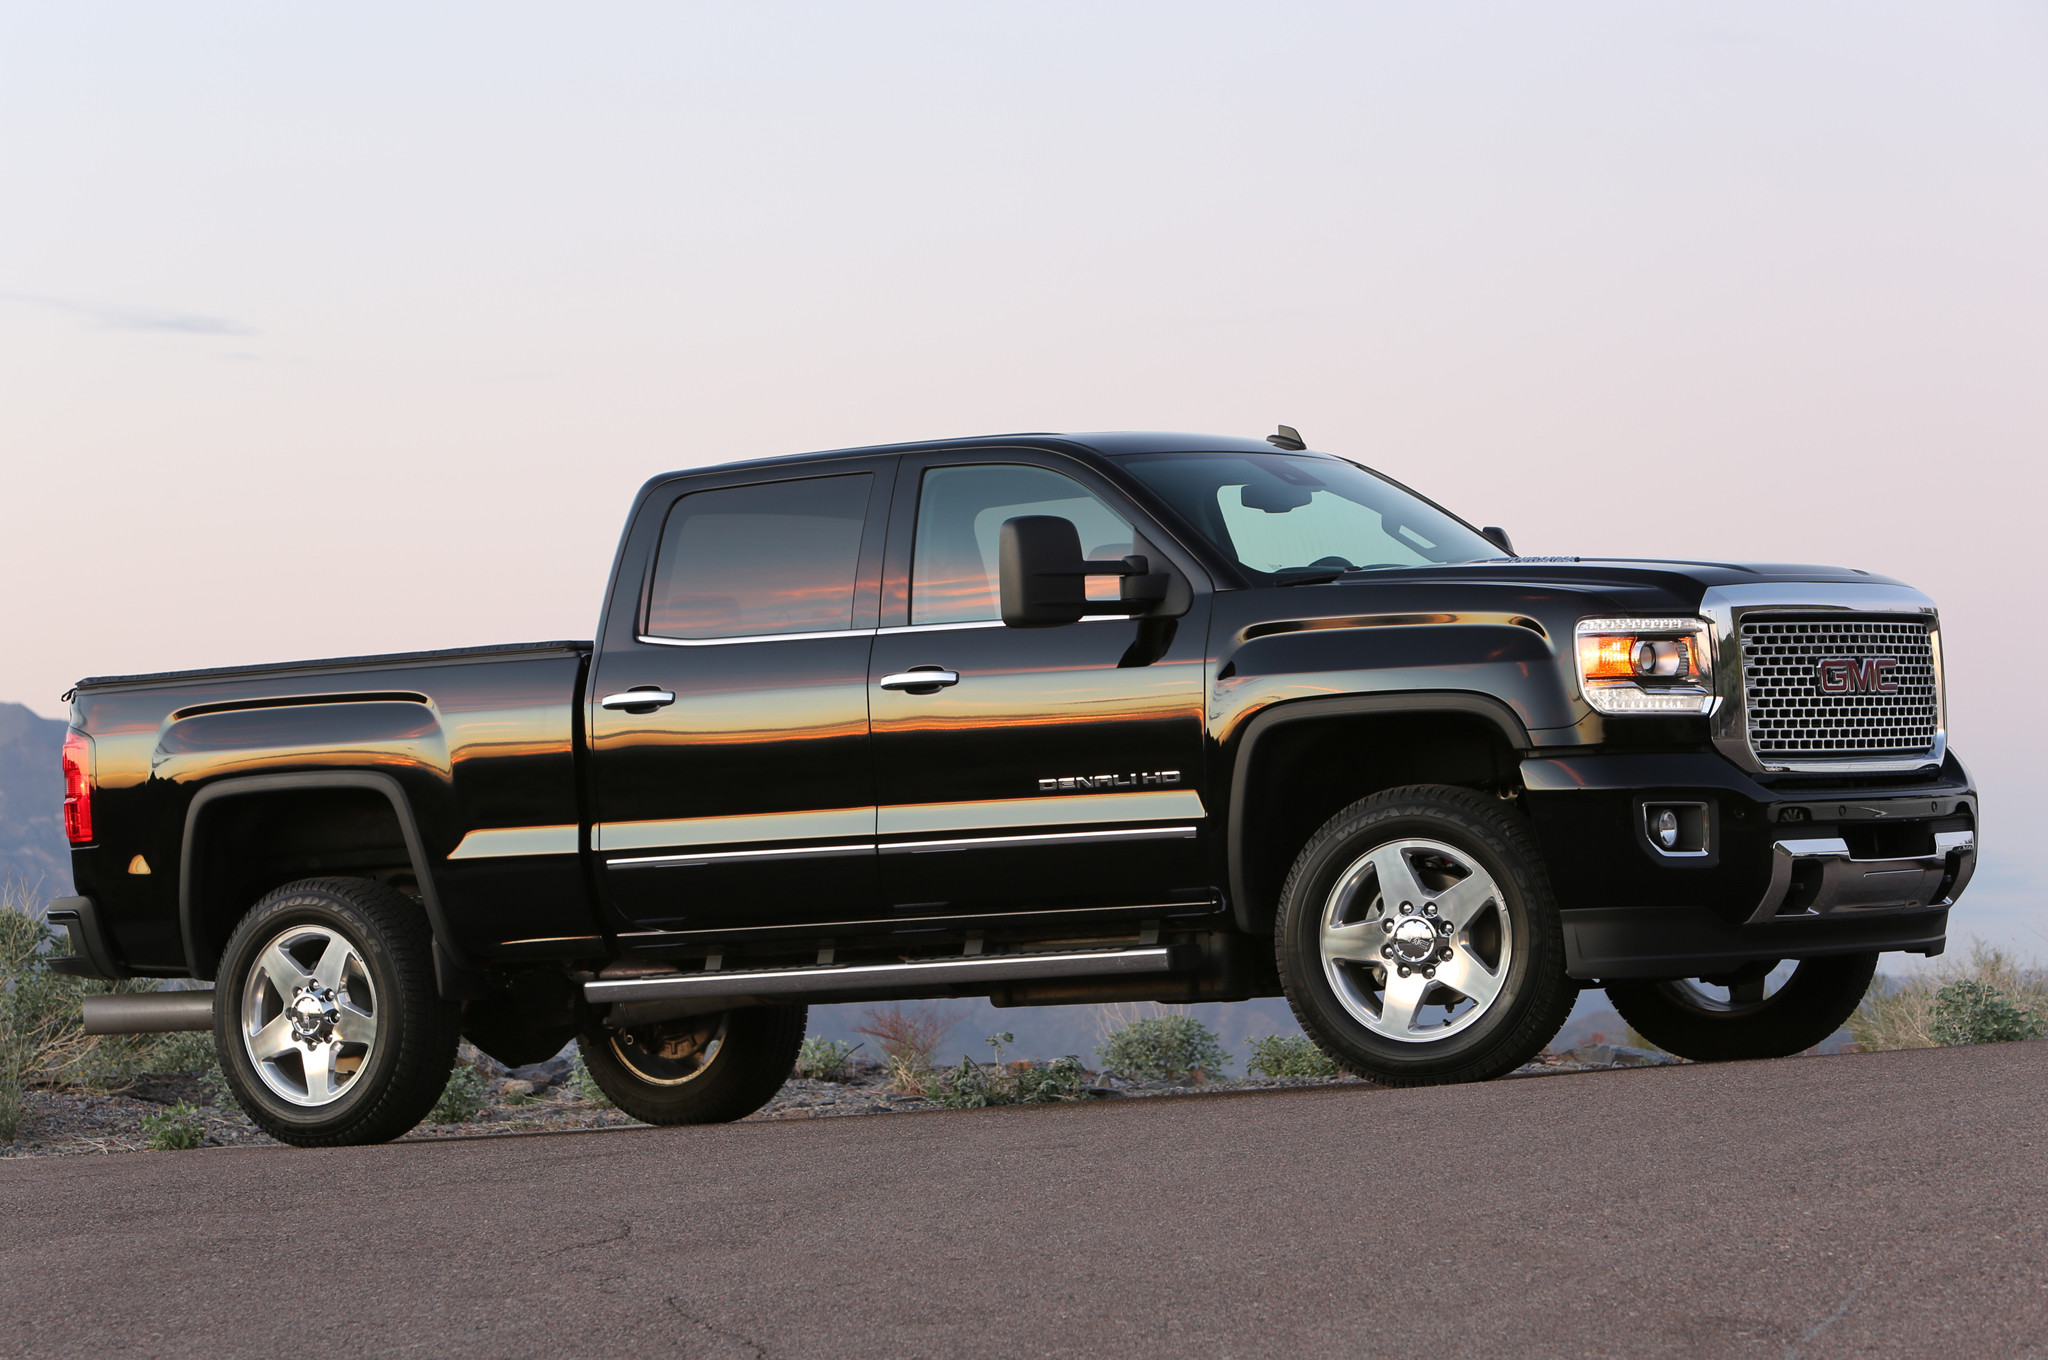 2048x1360 ... Best Duramax Diesel For Sale About Gmc Sierra Hd Denali Front Three  Quarters View ...